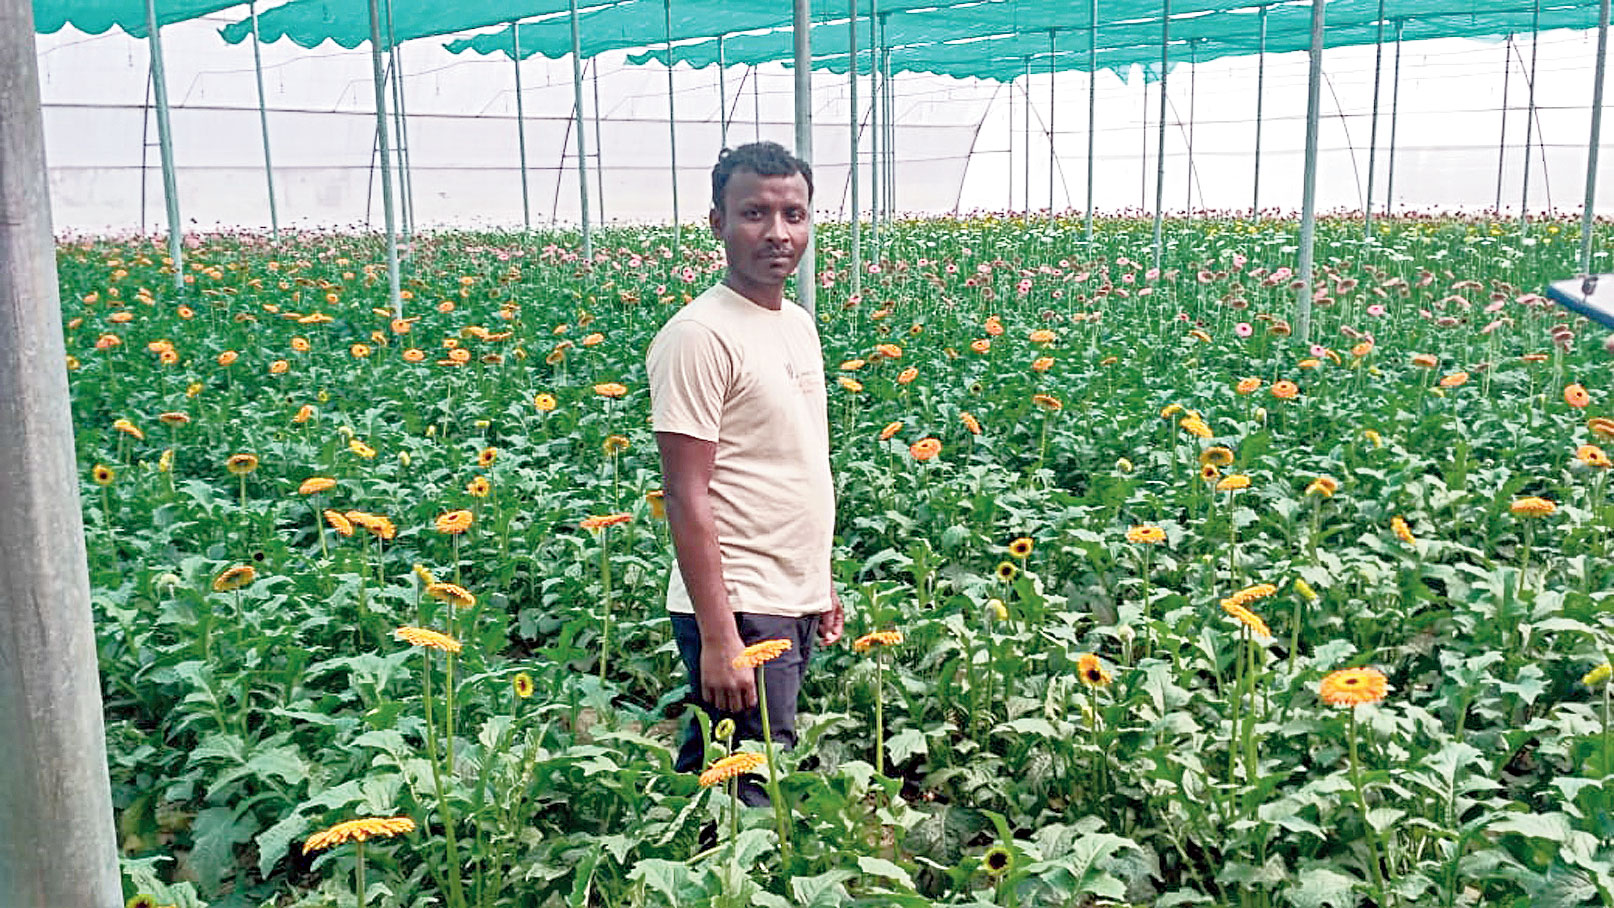 Kalindi stands at the greenhouse he has set up on the outskirts of Durgapur.